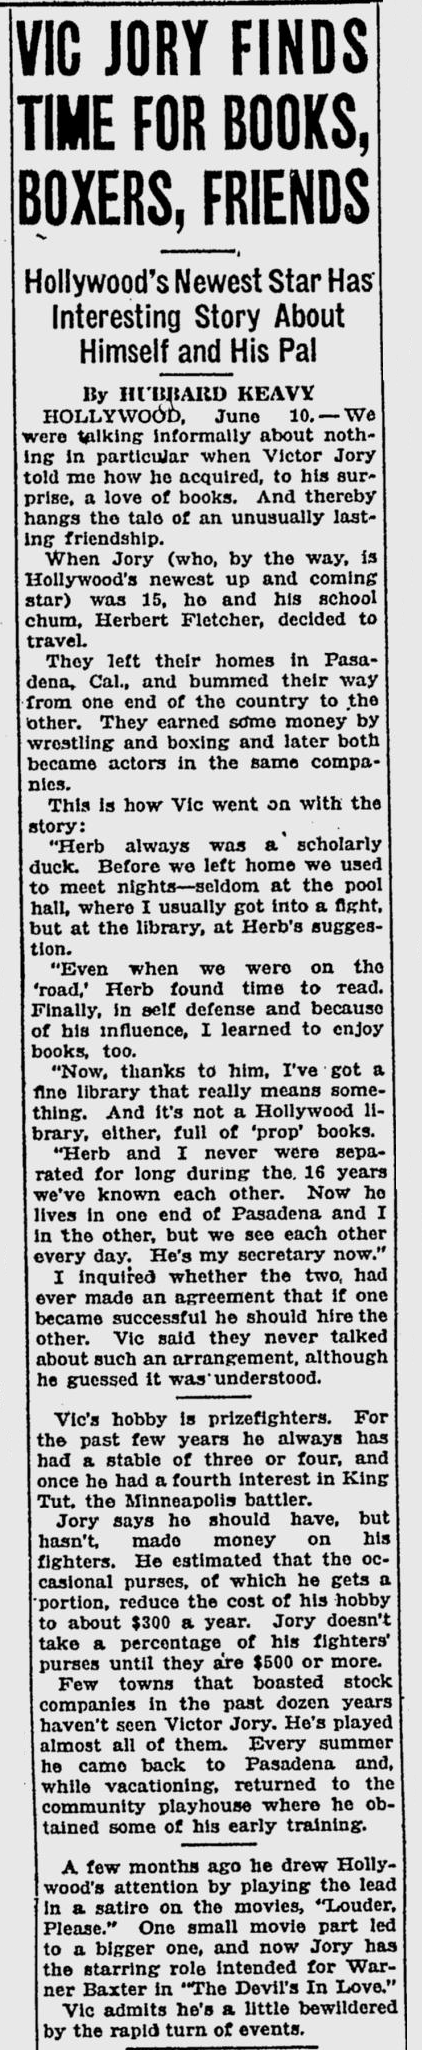 The Devil's in Love, St. Petersburgh Times, June 11, 1933